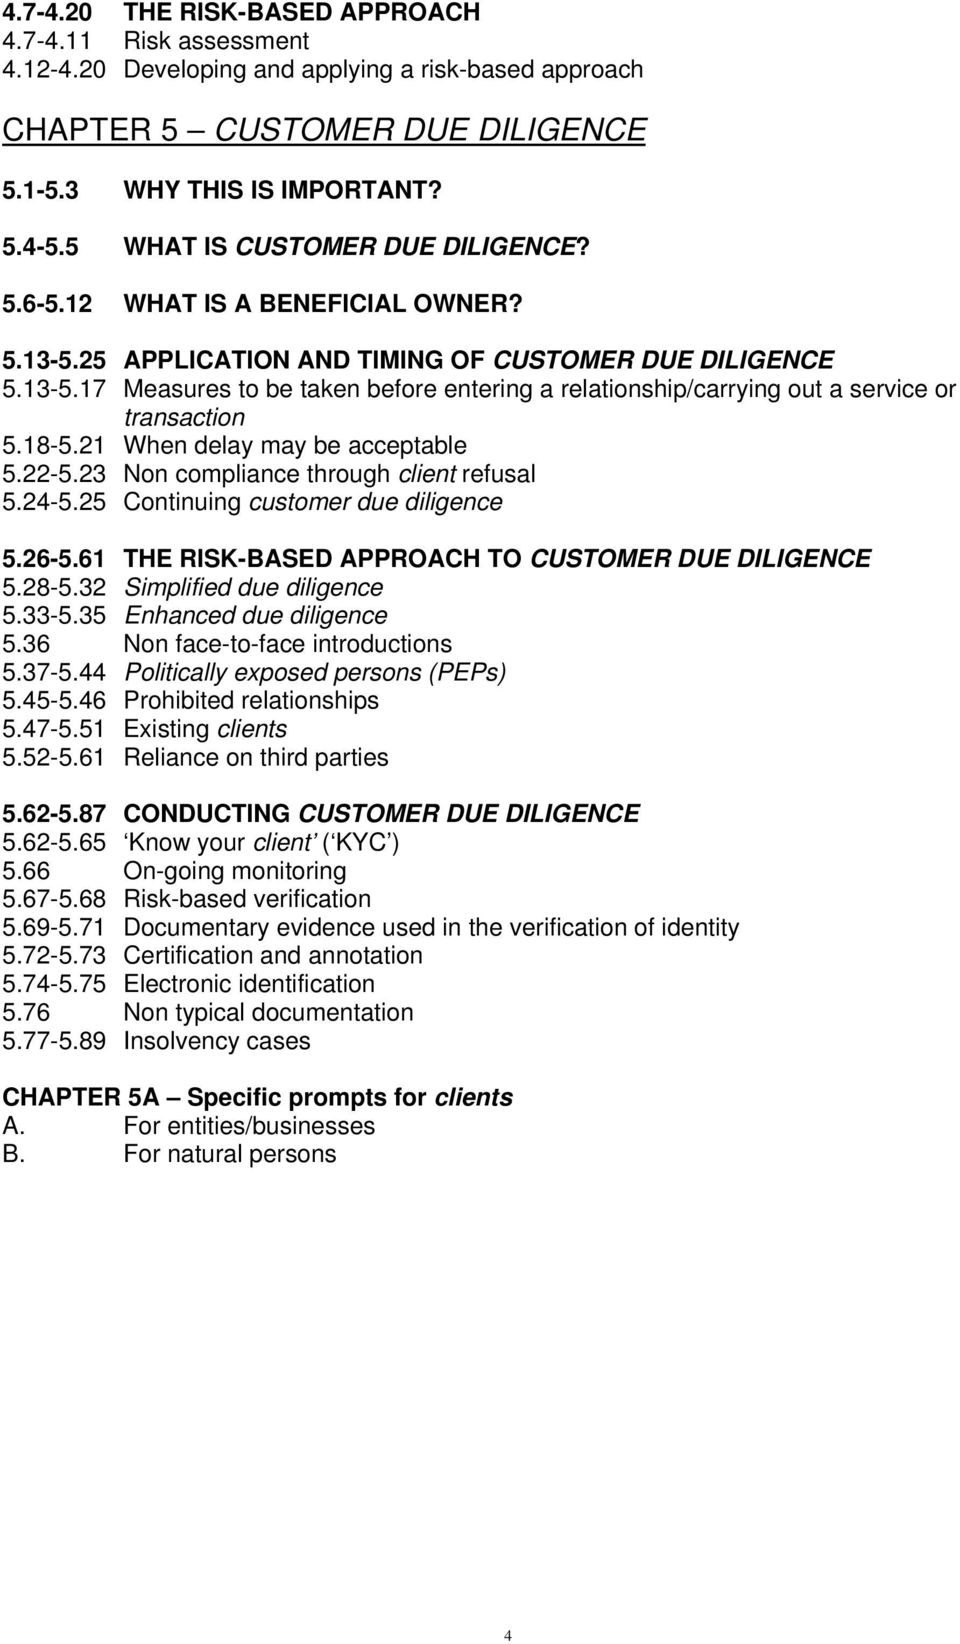 18-5.21 When delay may be acceptable 5.22-5.23 Non compliance through client refusal 5.24-5.25 Continuing customer due diligence 5.26-5.61 THE RISK-BASED APPROACH TO CUSTOMER DUE DILIGENCE 5.28-5.